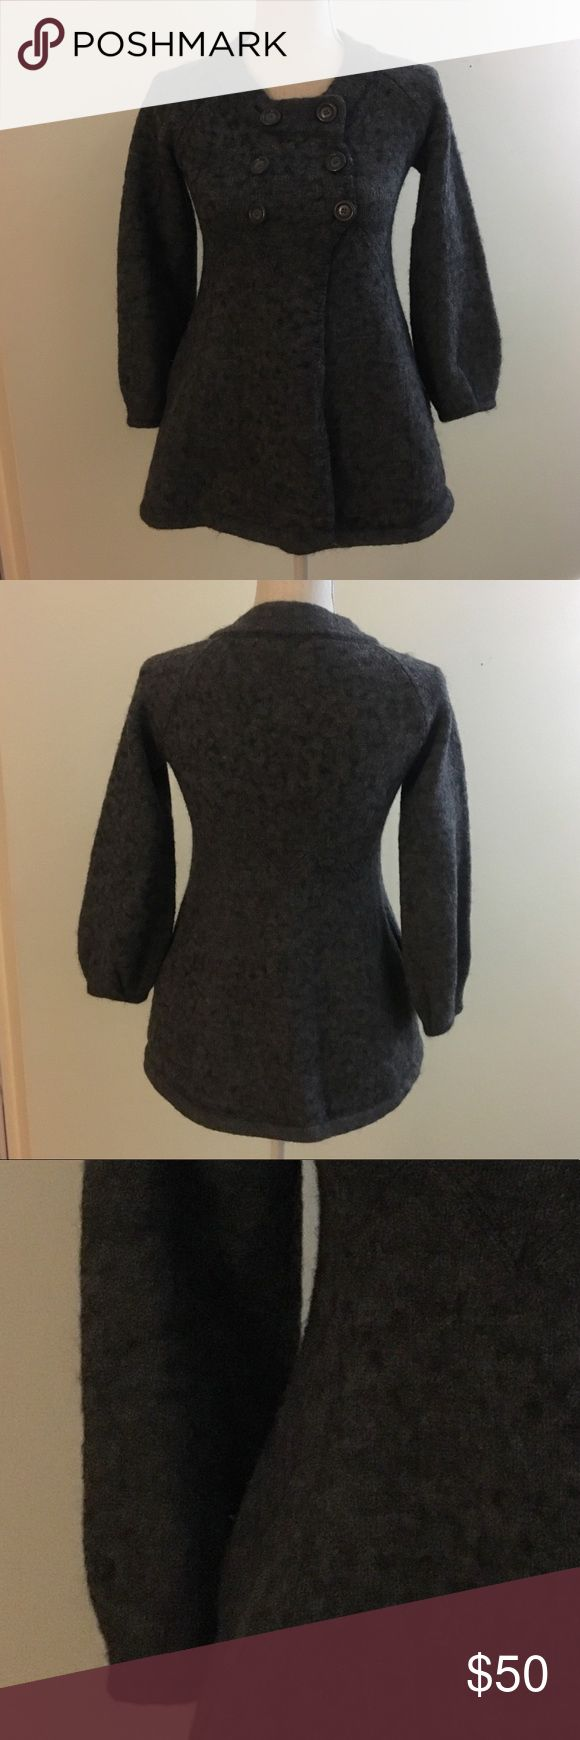 """French Connection Alpaca/Wool Blend Sweater Coat French Connection Gray Alpaca/Wool Blend Sweater Coat.  Double breasted button closure with side seam pockets.  45% Acrylic, 37% Alpaca, and 18% Wool.  Bust is 16"""" across (more stretch if needed) and length is 27"""". Gently worn and in great condition.  Size XS. French Connection Sweaters"""